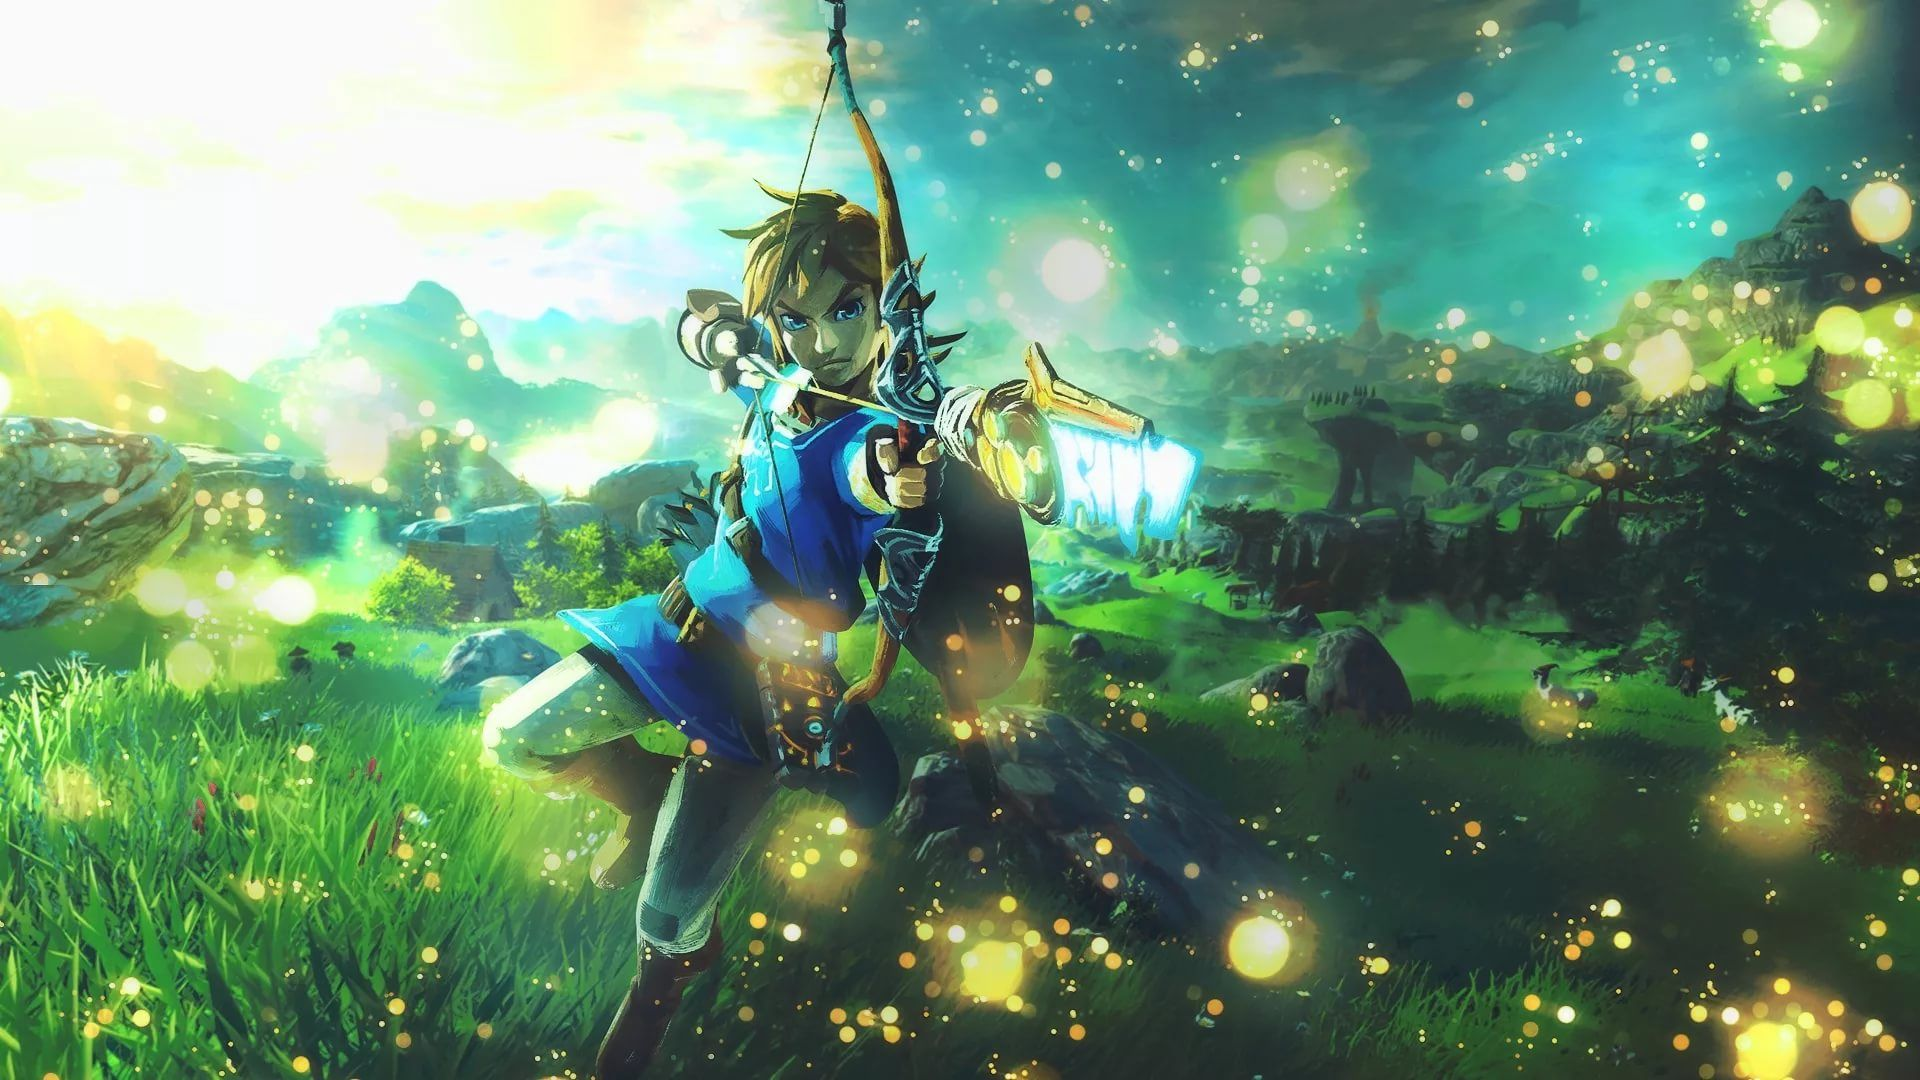 Zelda Live download free wallpaper image search